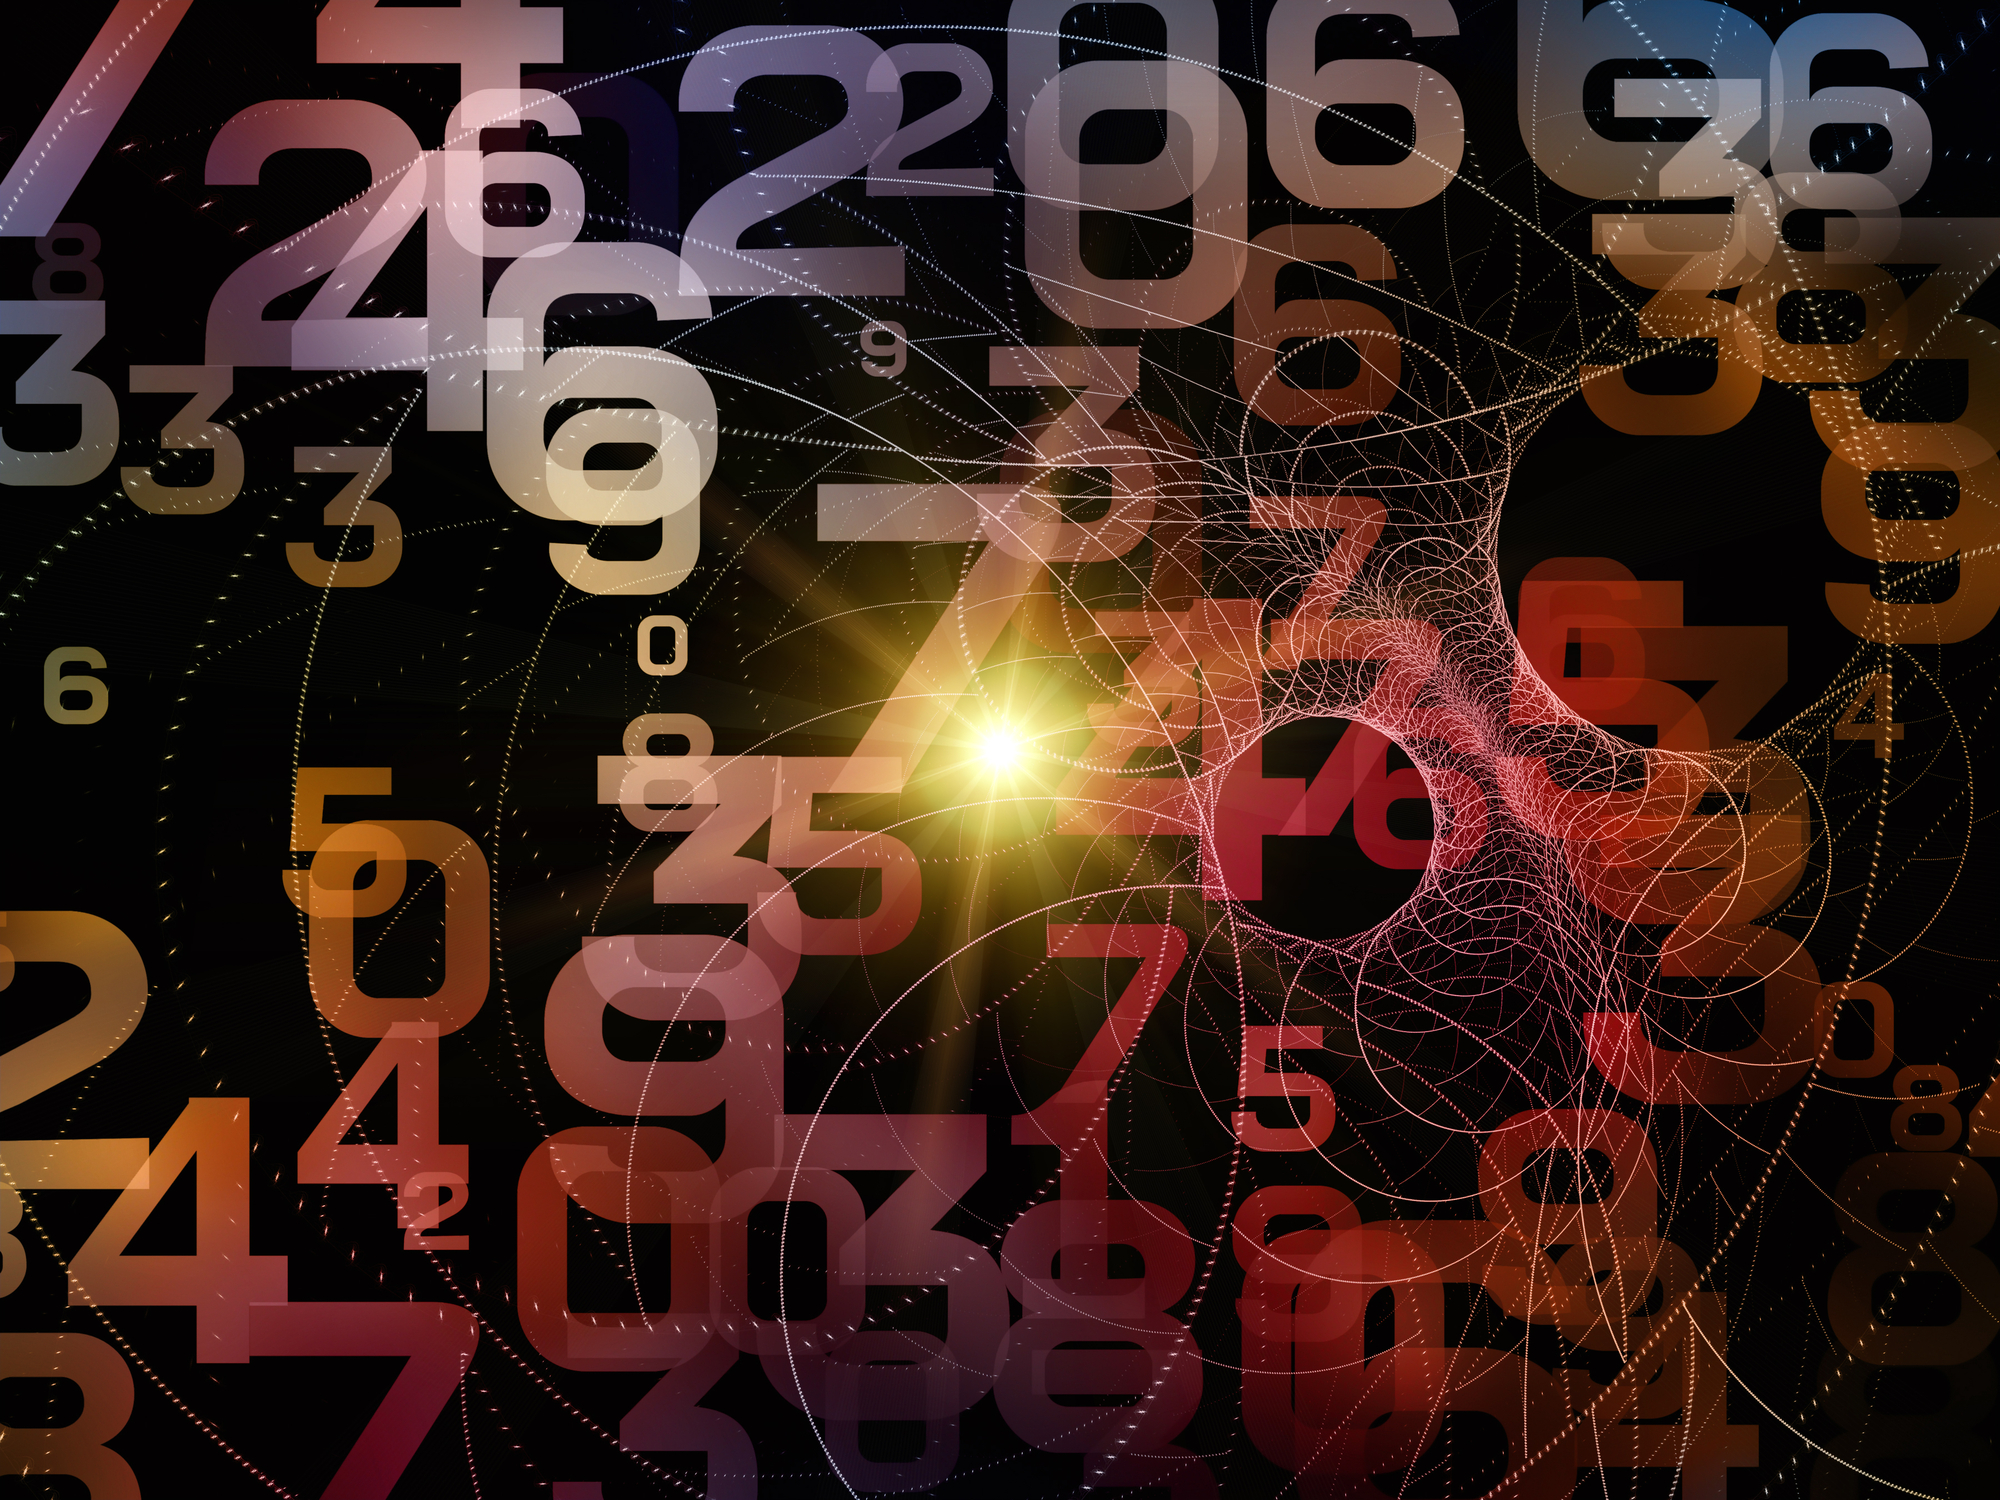 Superimposed numbers float on a black background, lines and arcs create the illusion of movement in the frame.